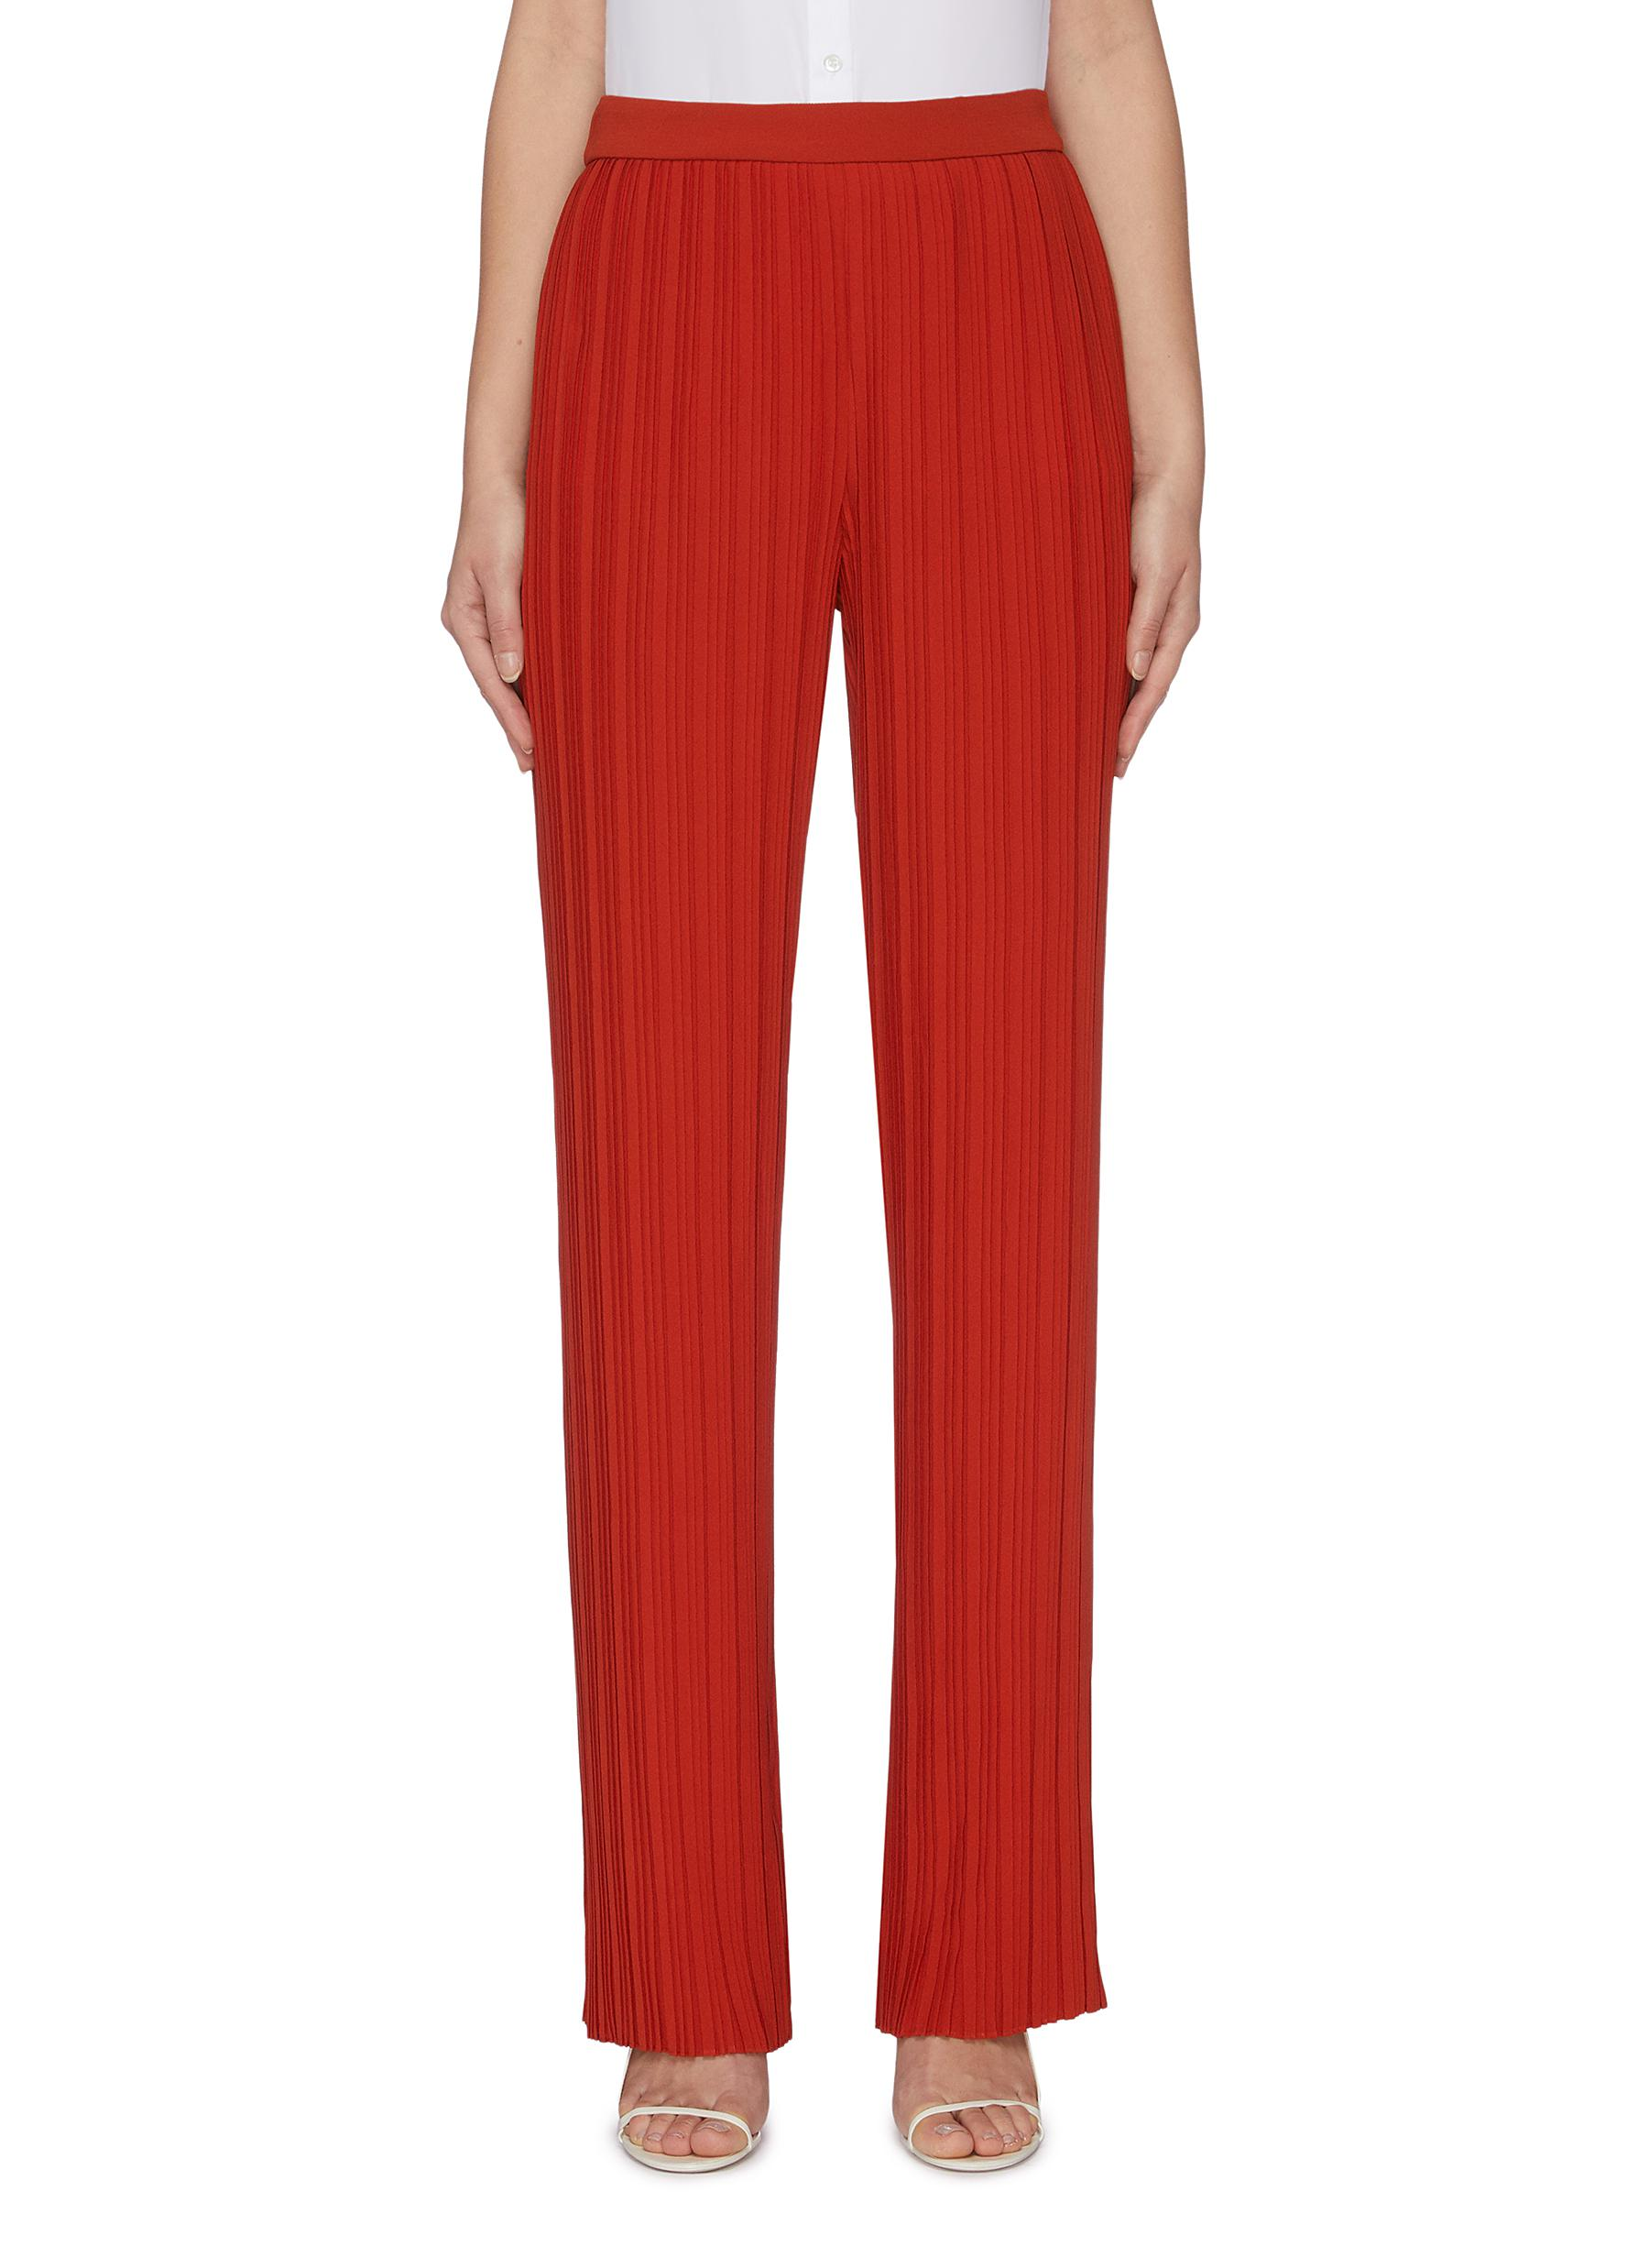 Pleated crepe straight leg pants by Victoria, Victoria Beckham